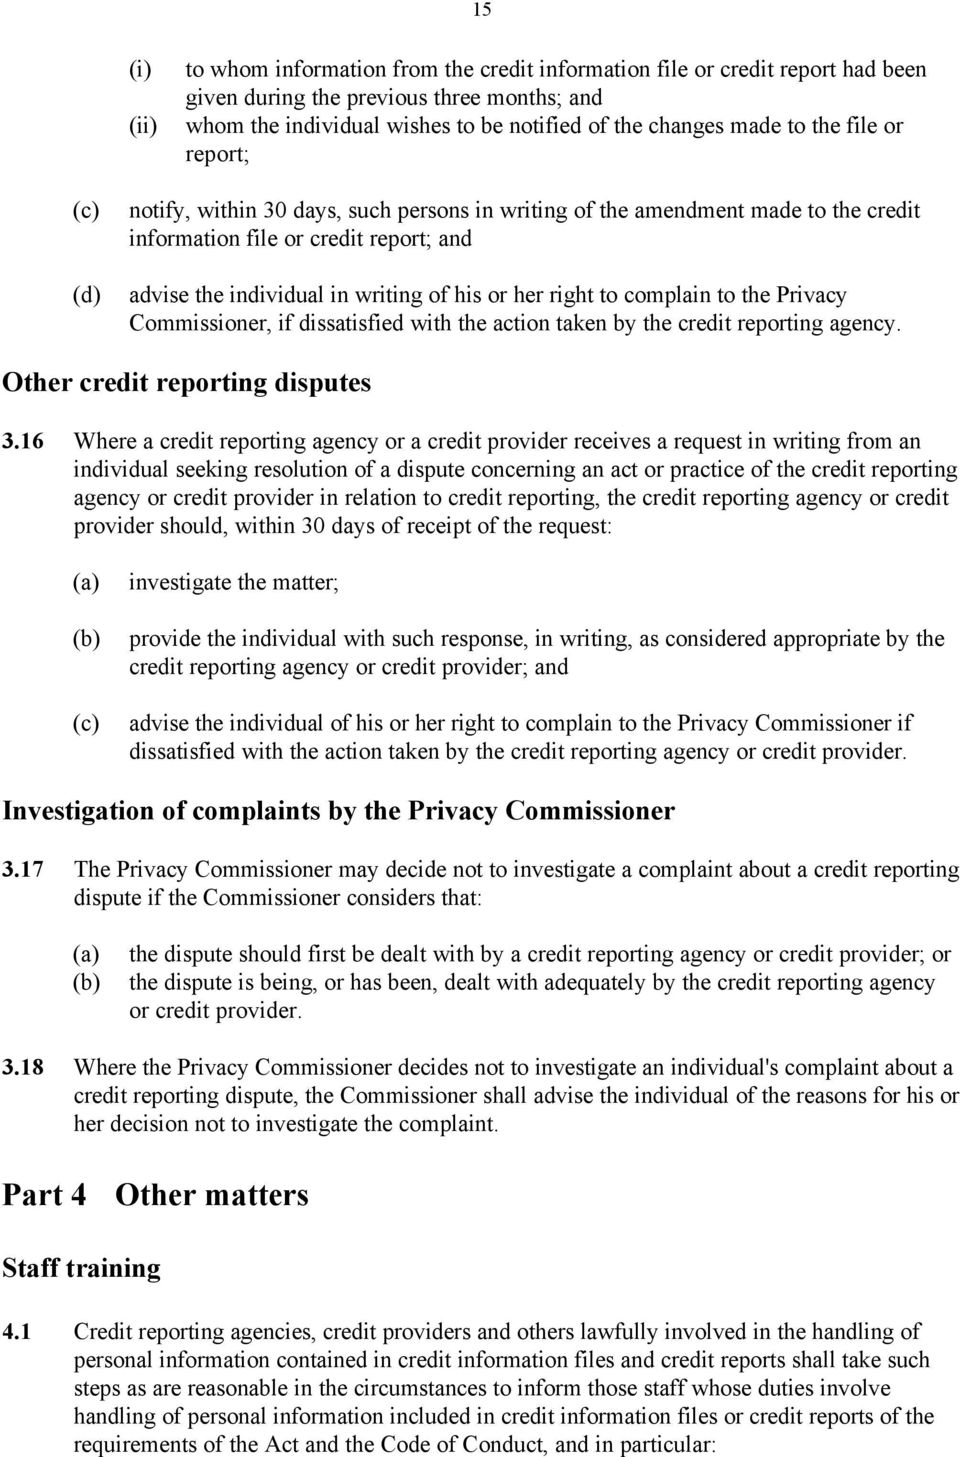 right to complain to the Privacy Commissioner, if dissatisfied with the action taken by the credit reporting agency. Other credit reporting disputes 3.